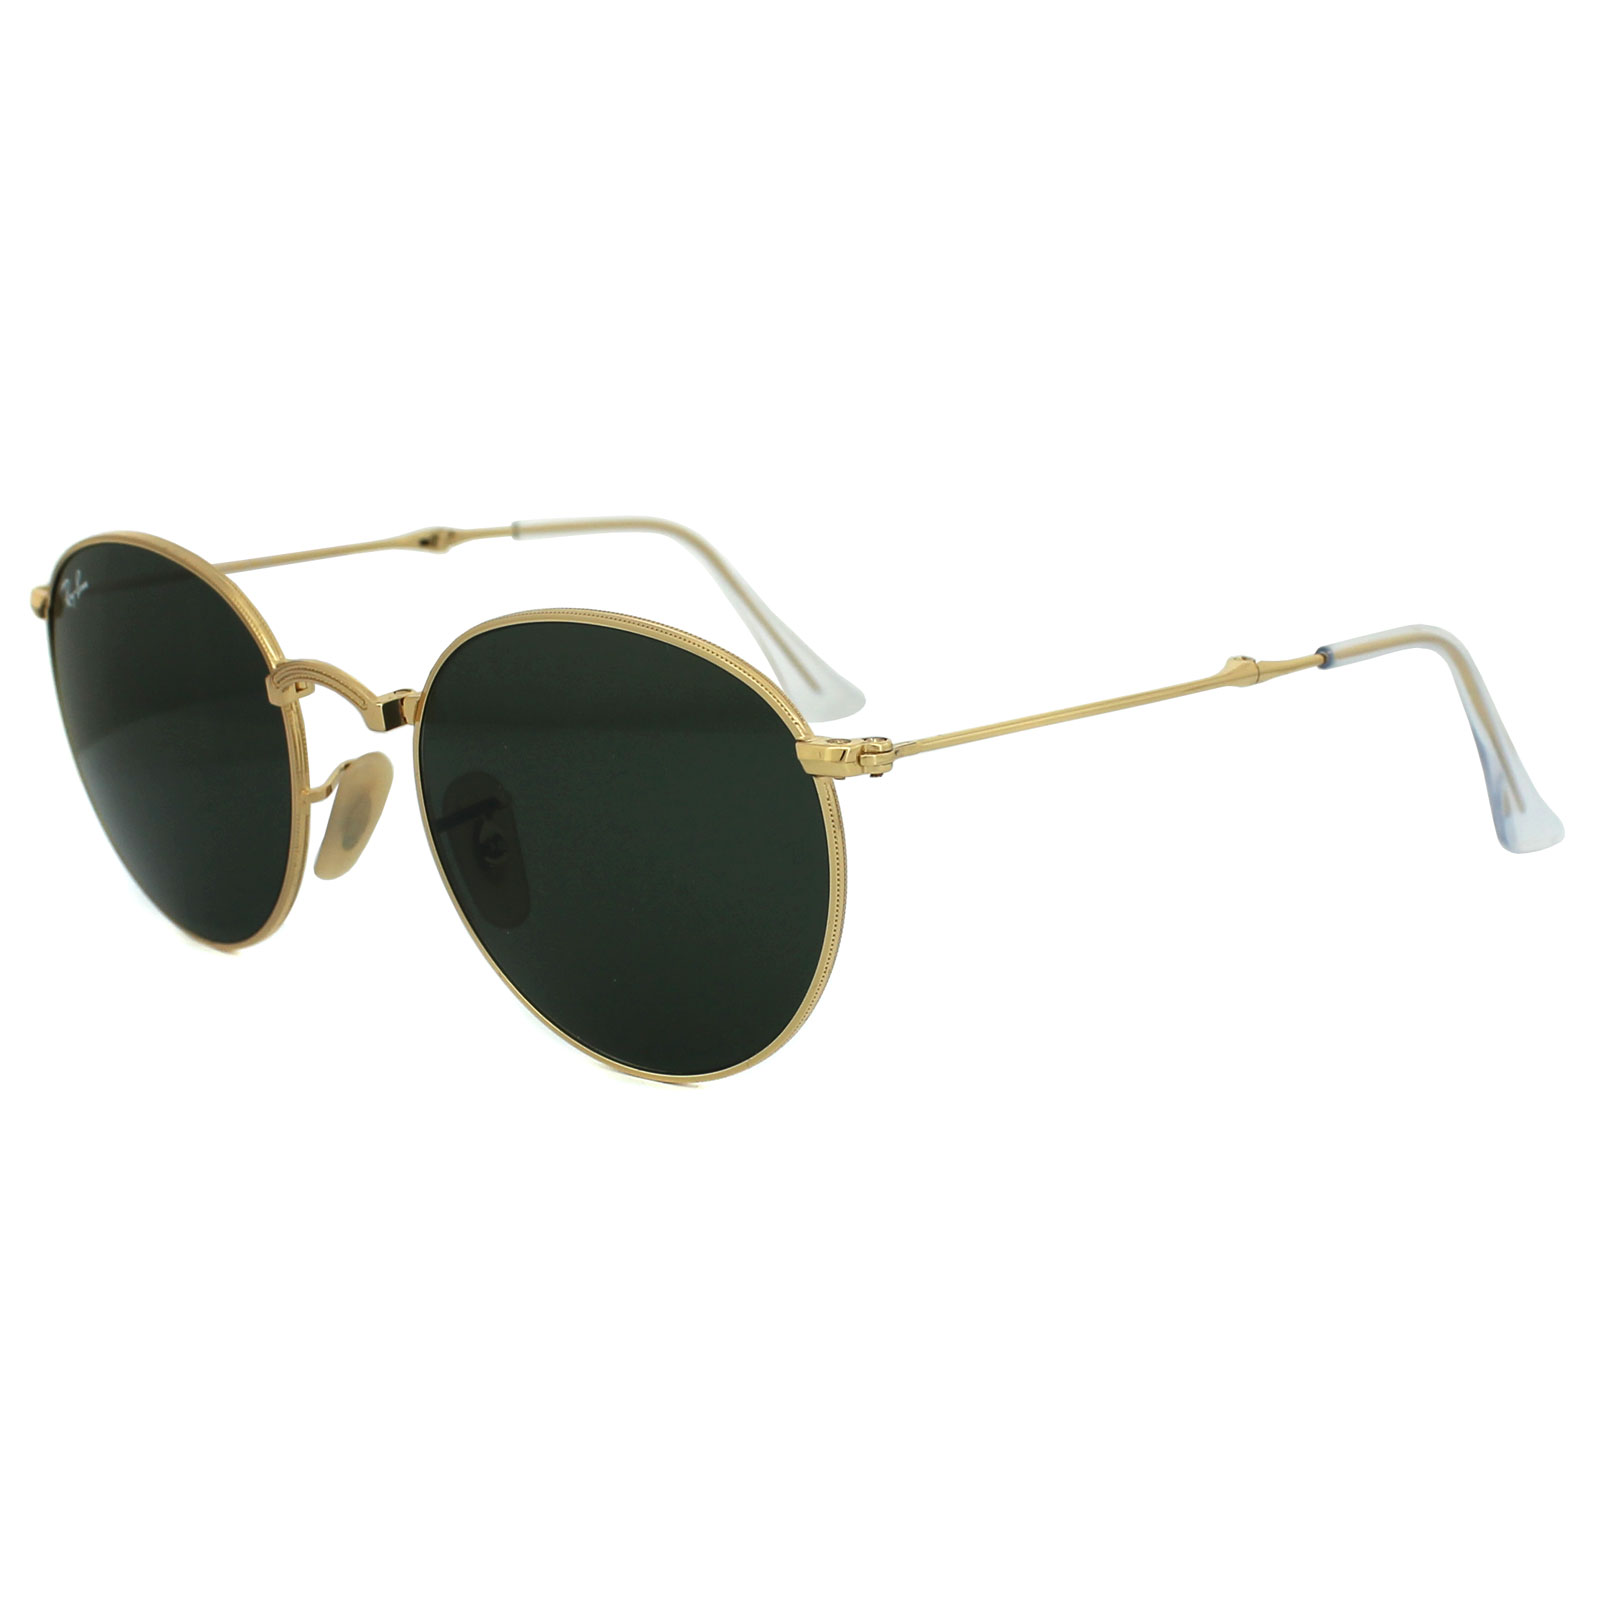 21ad251fd34 Ray-Ban Sunglasses Round Folding 3532 001 Gold Green 8053672497809 ...